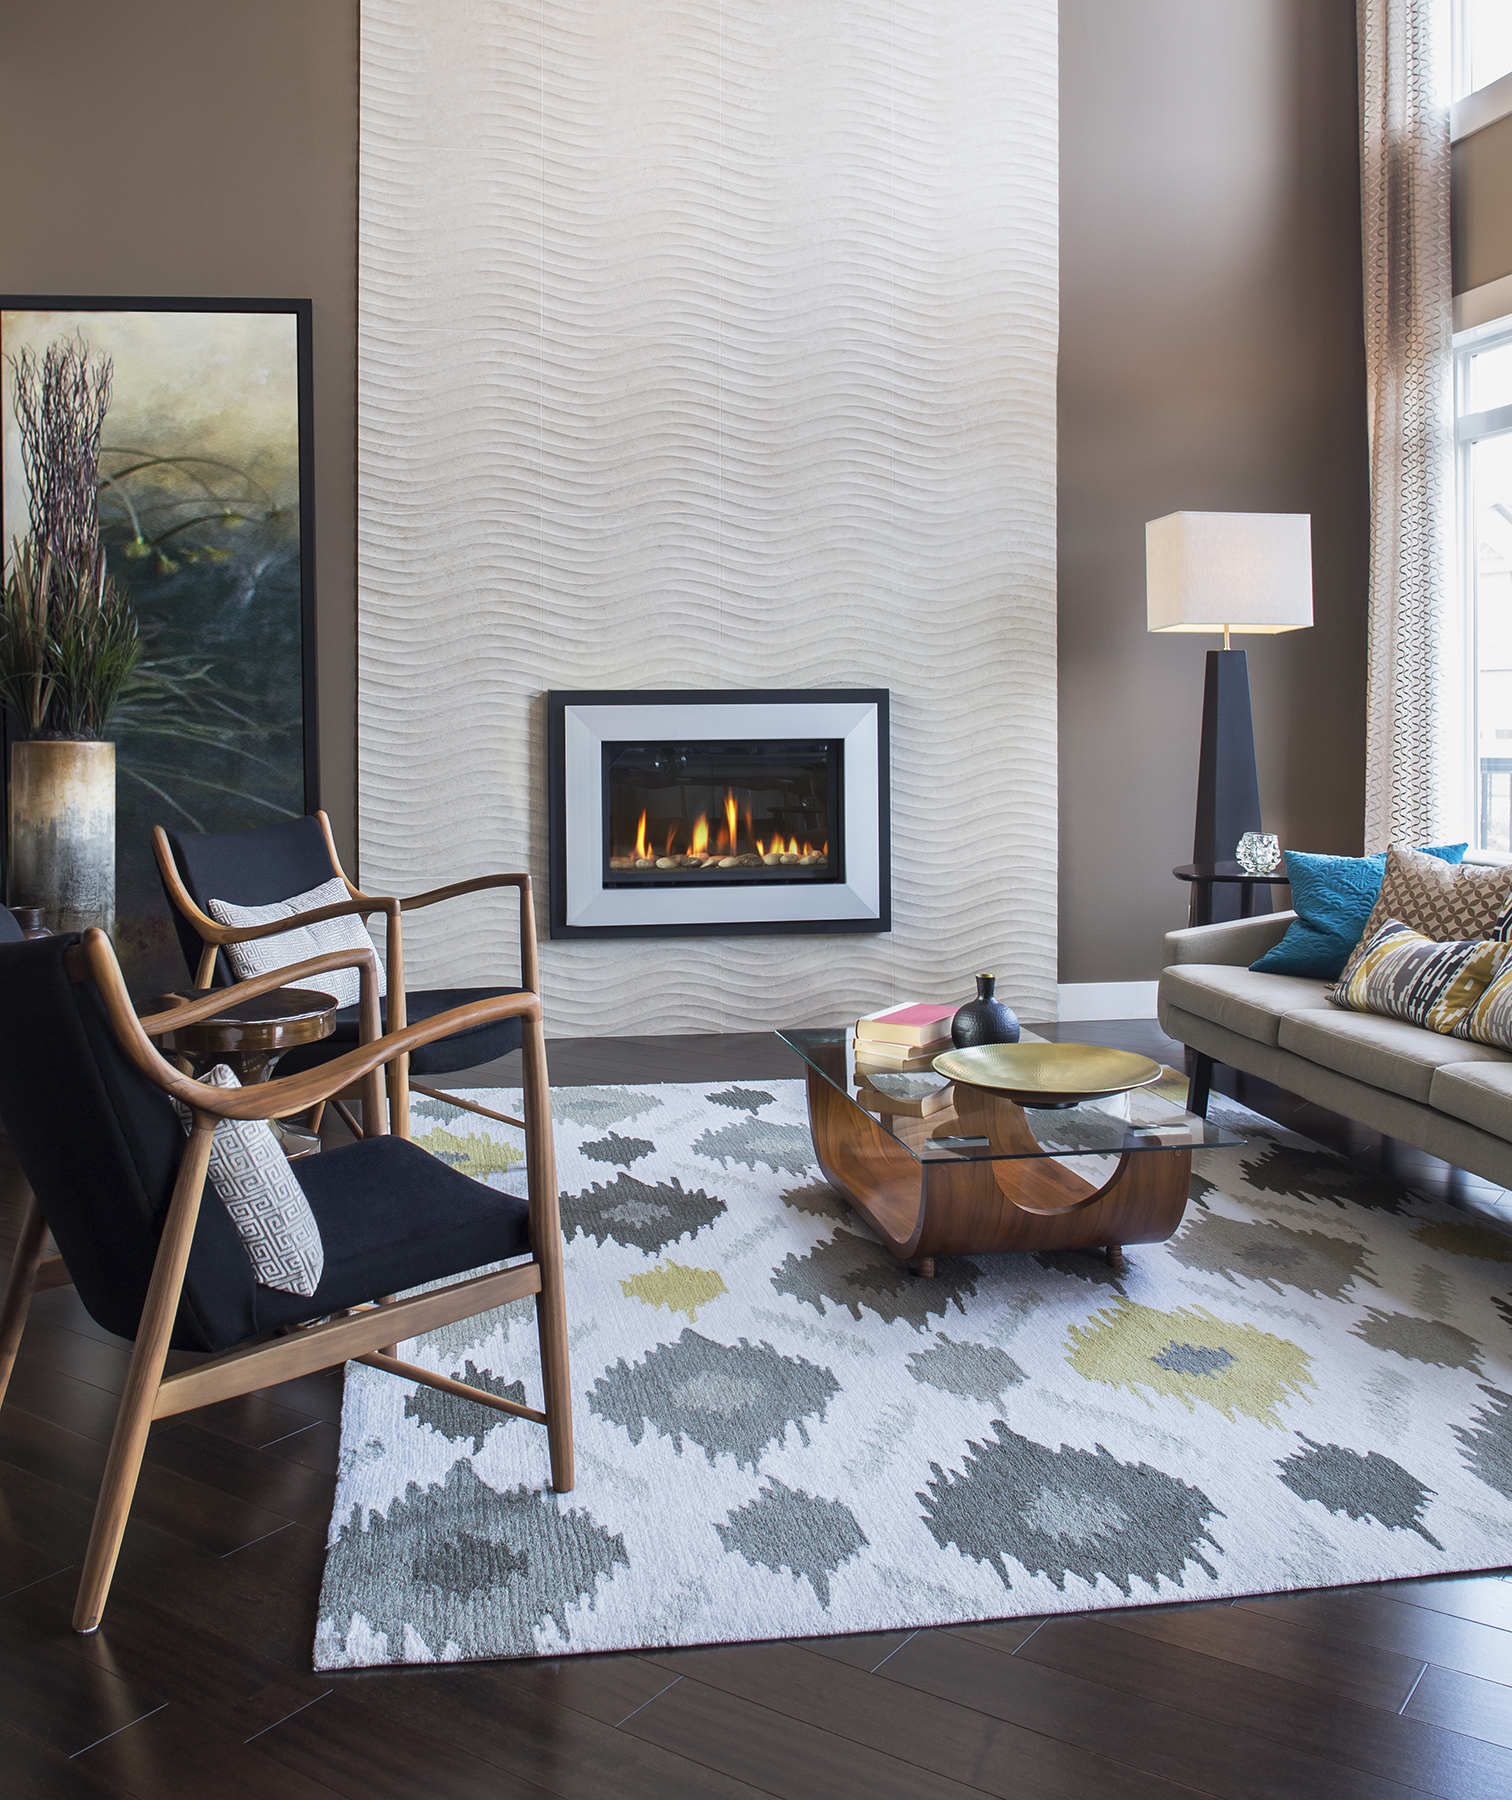 Living Room Staging Ideas: 7 Expert Home Staging Tips You Can Do Yourself